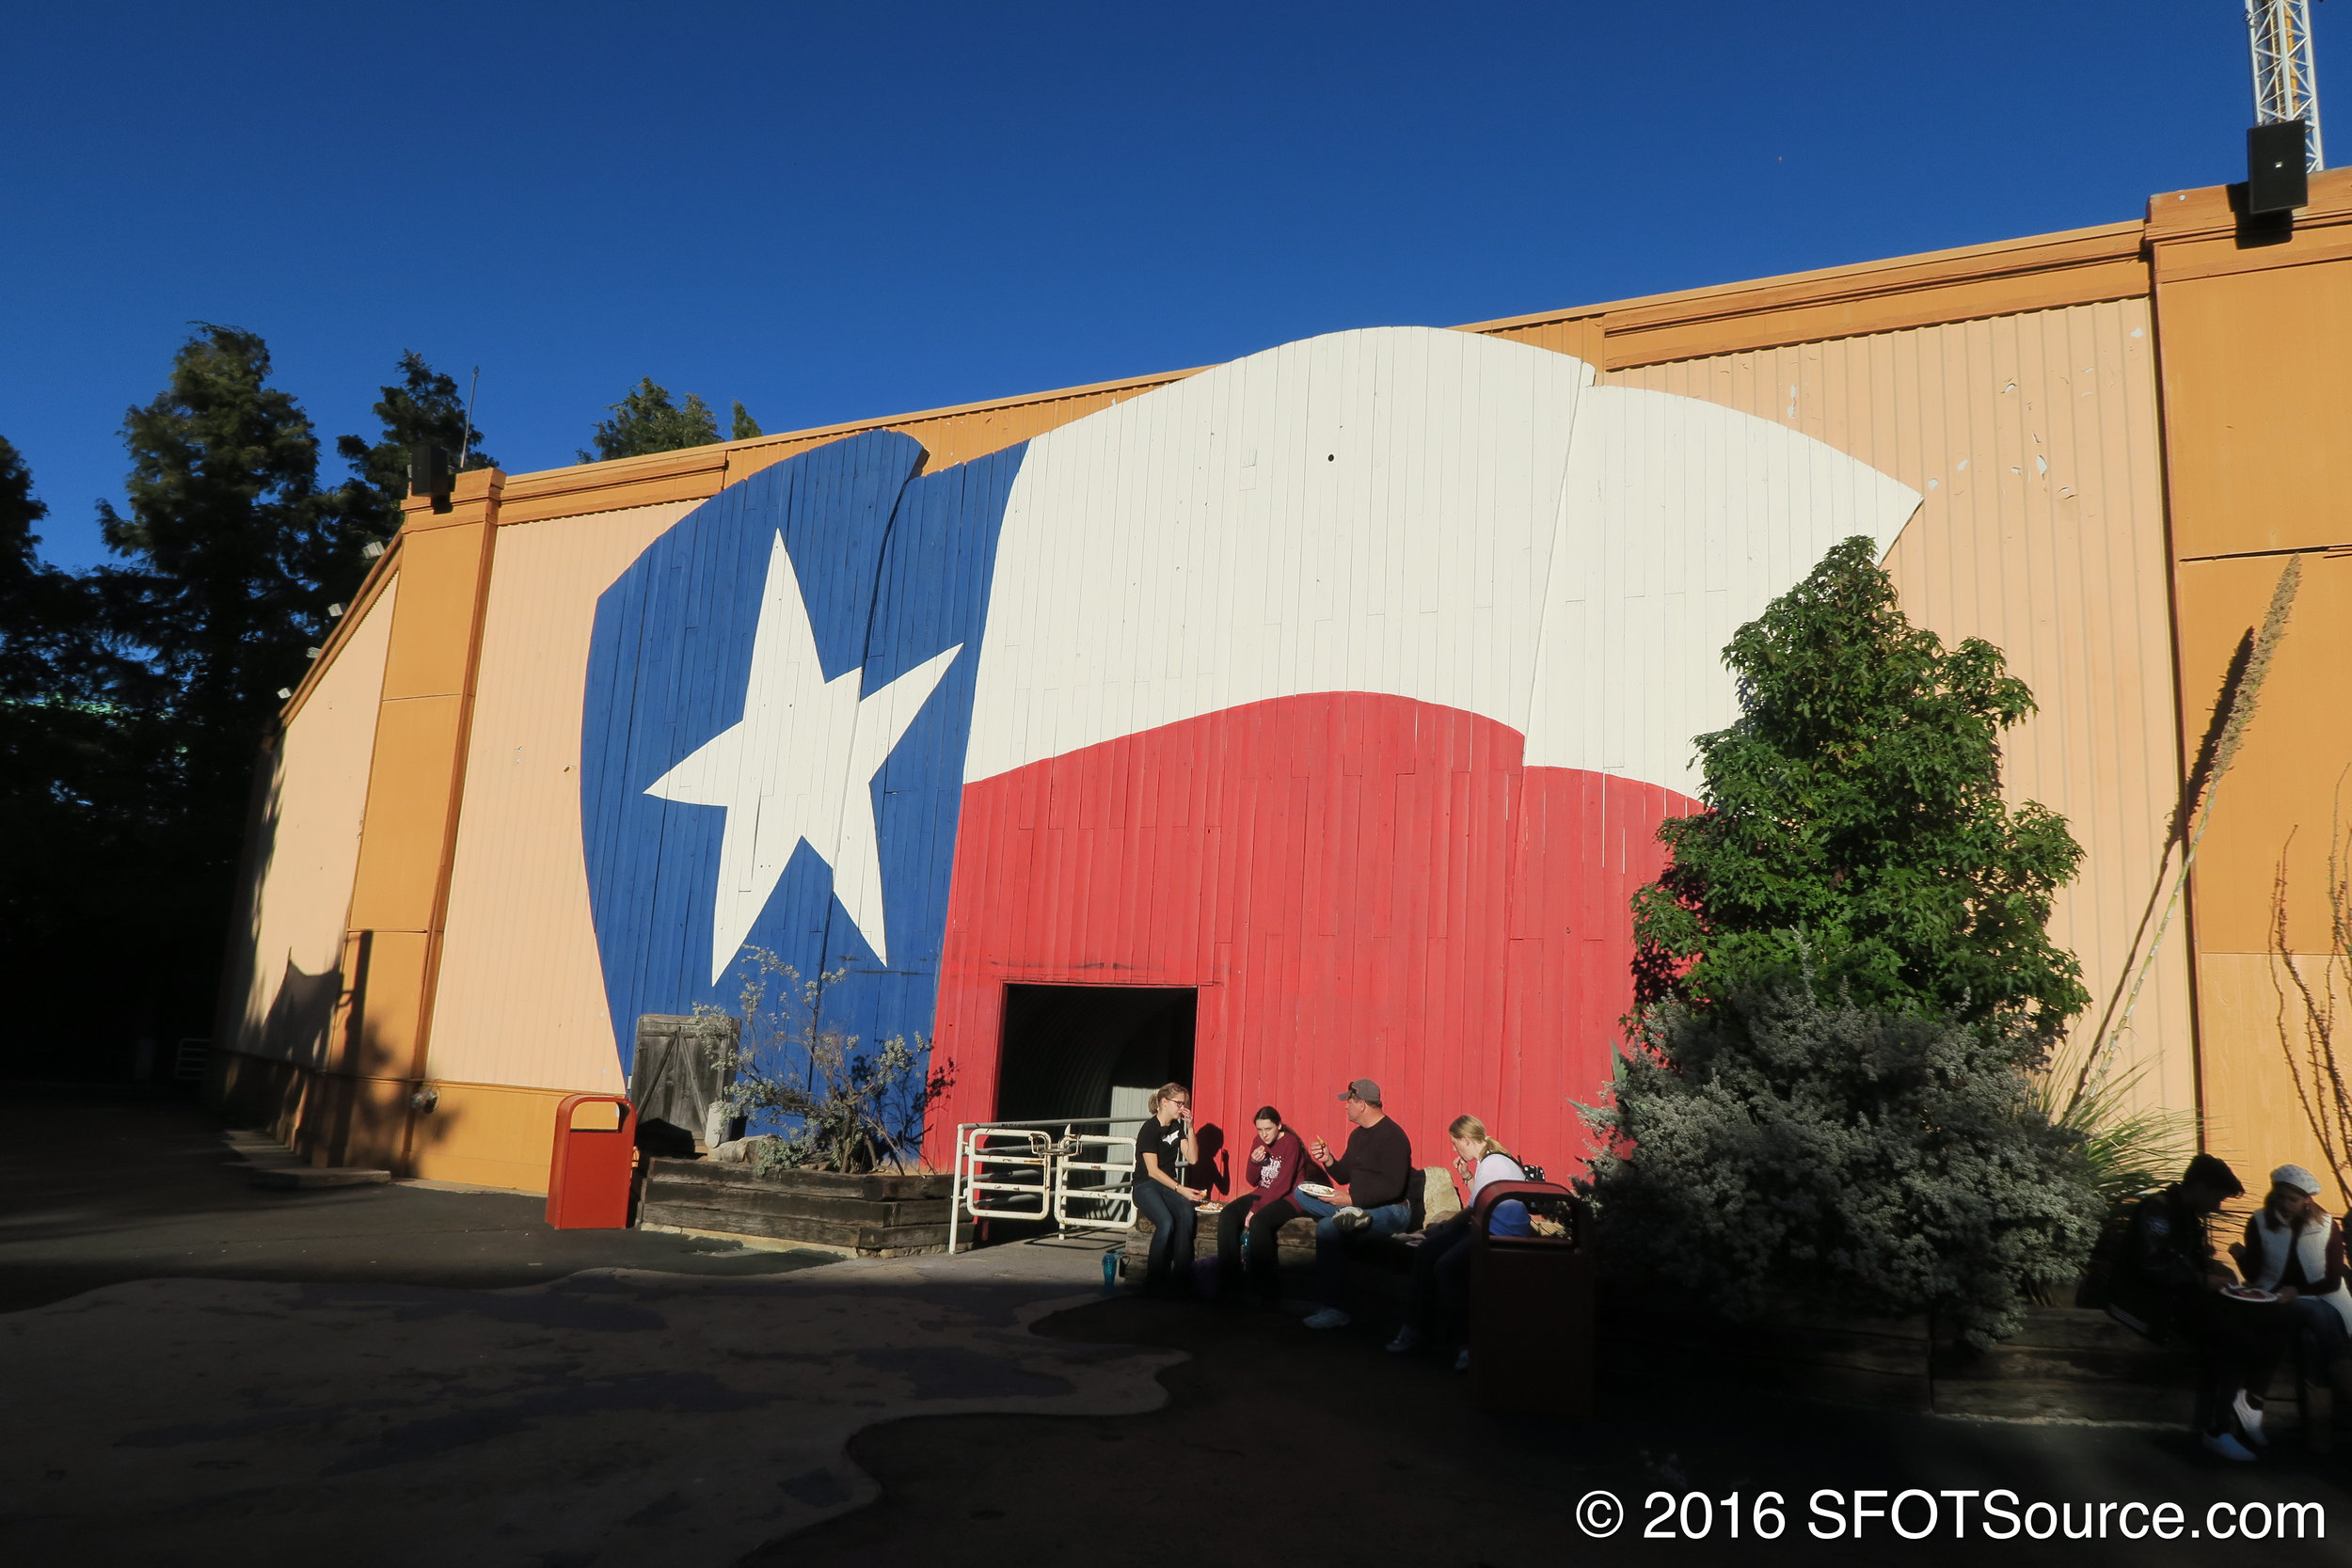 Texas Arena is an outdoor amphitheater.